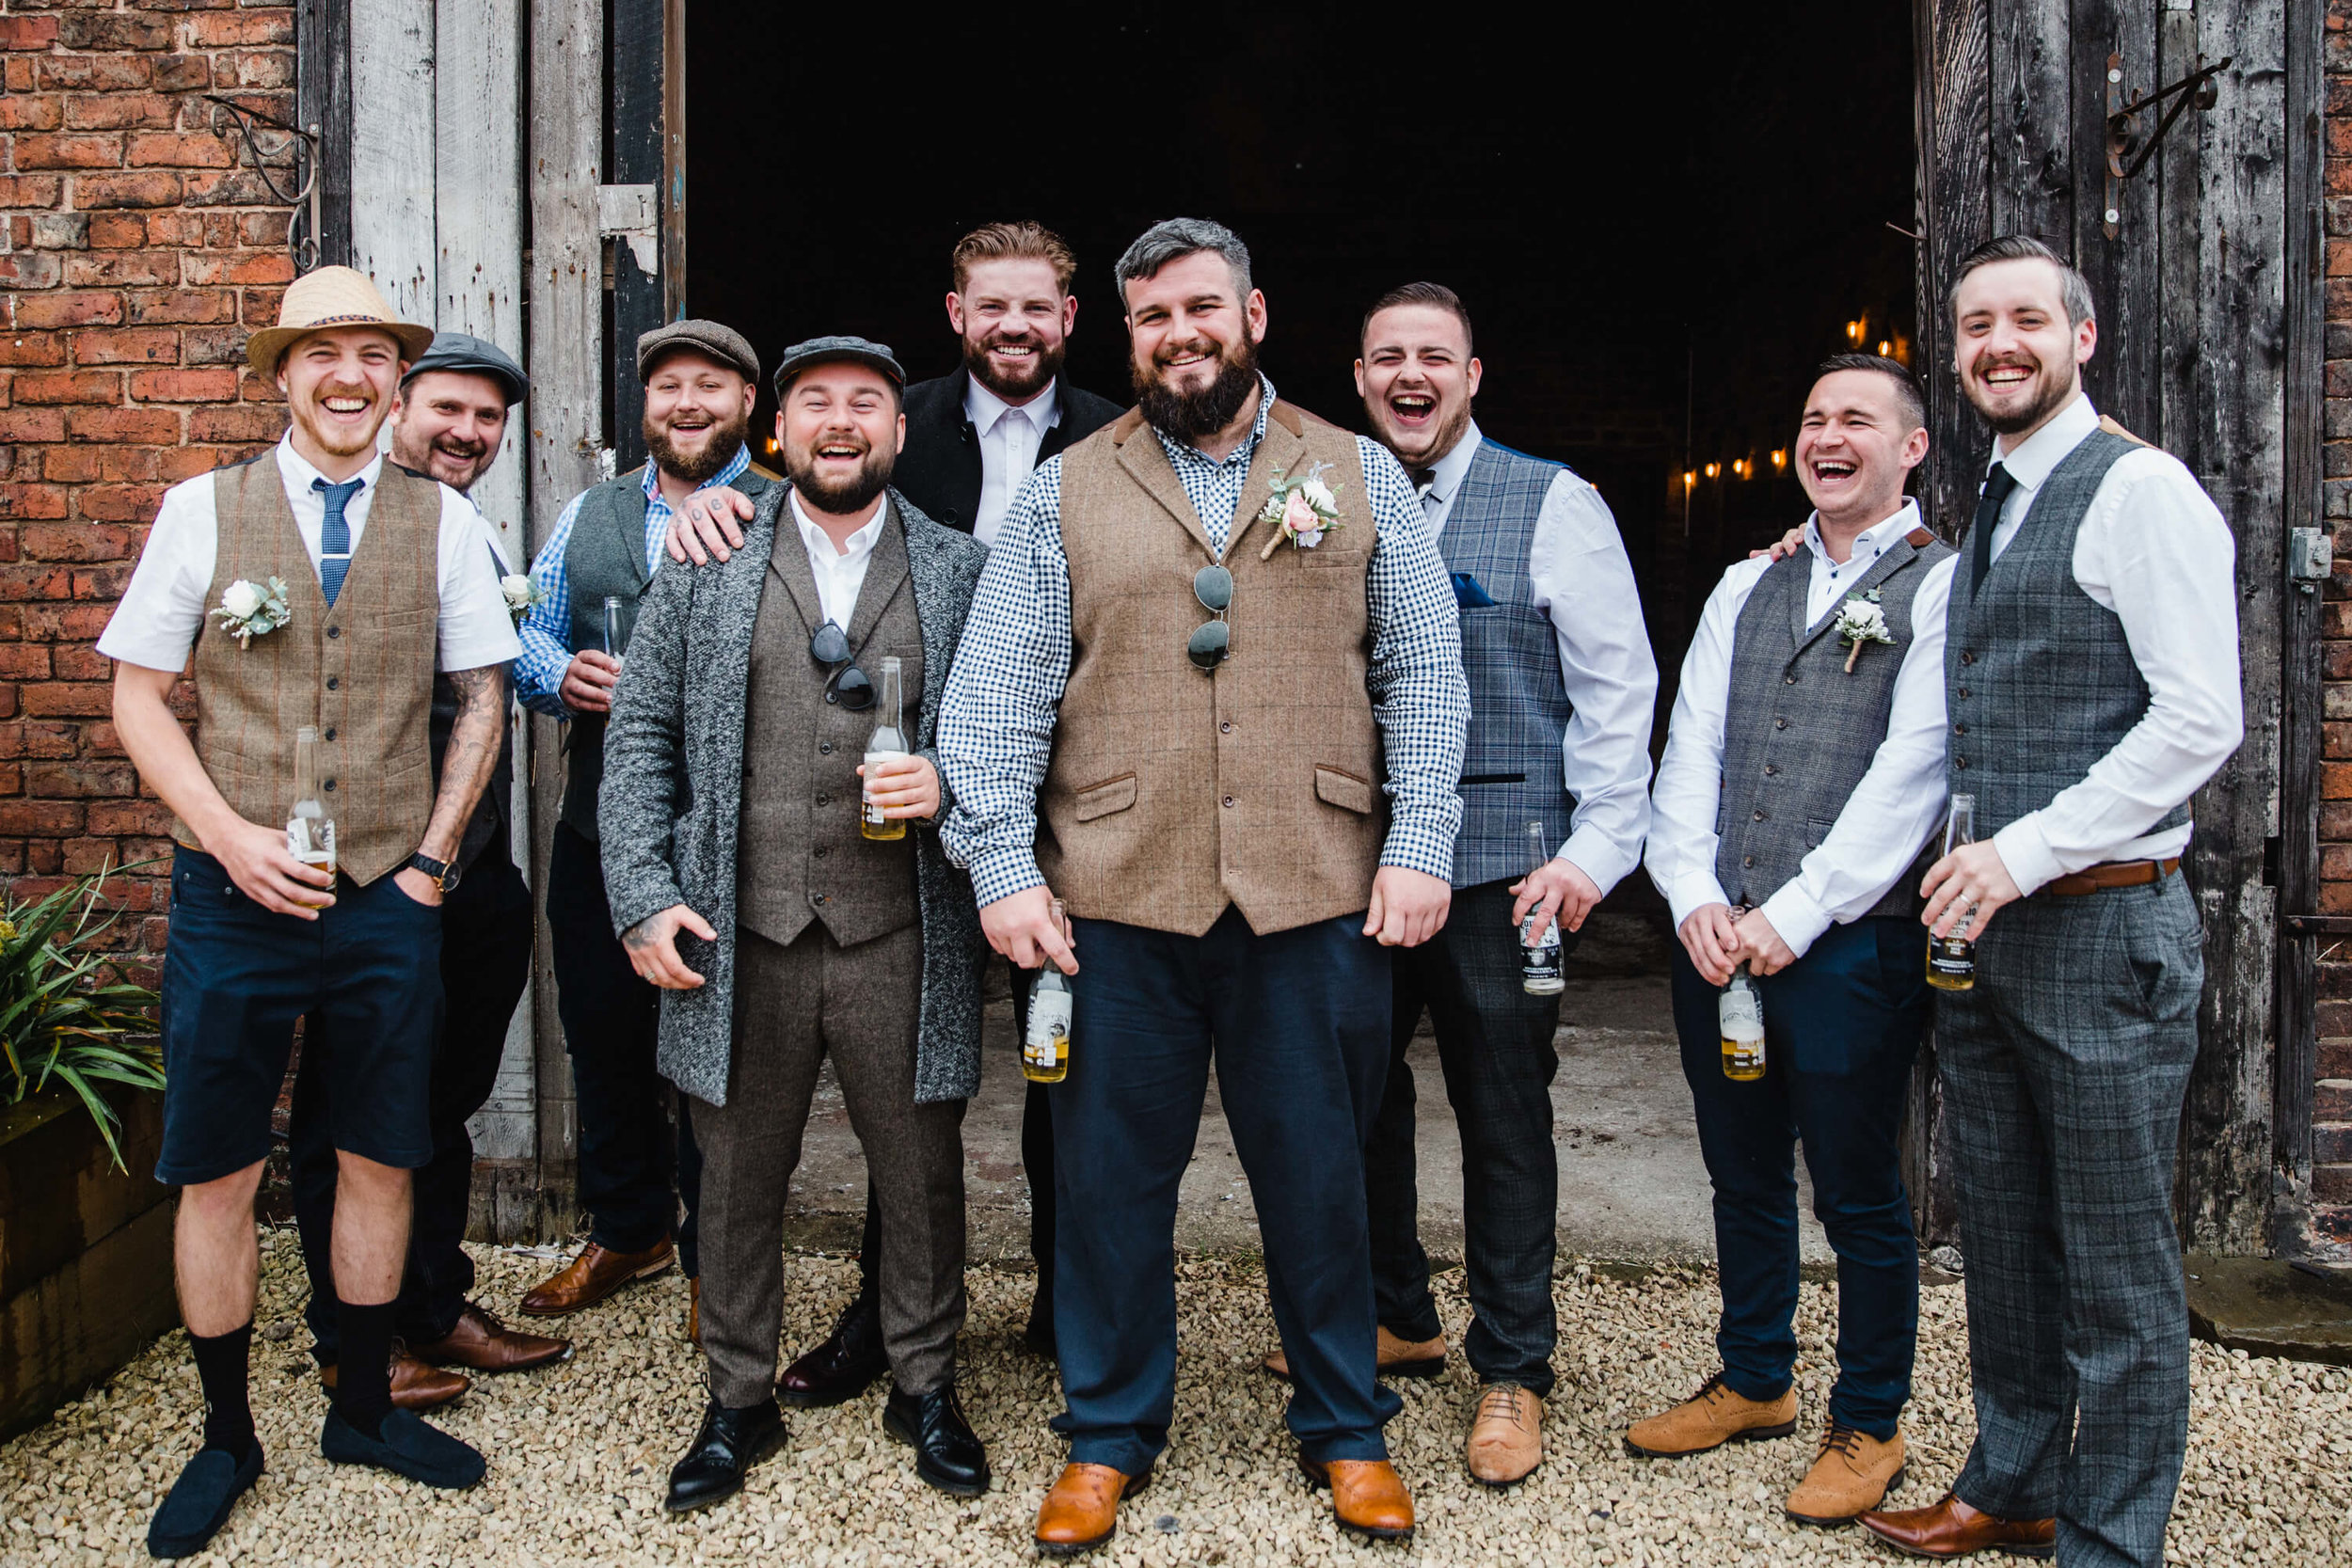 groom and groomsmen smiling at camera before wedding service